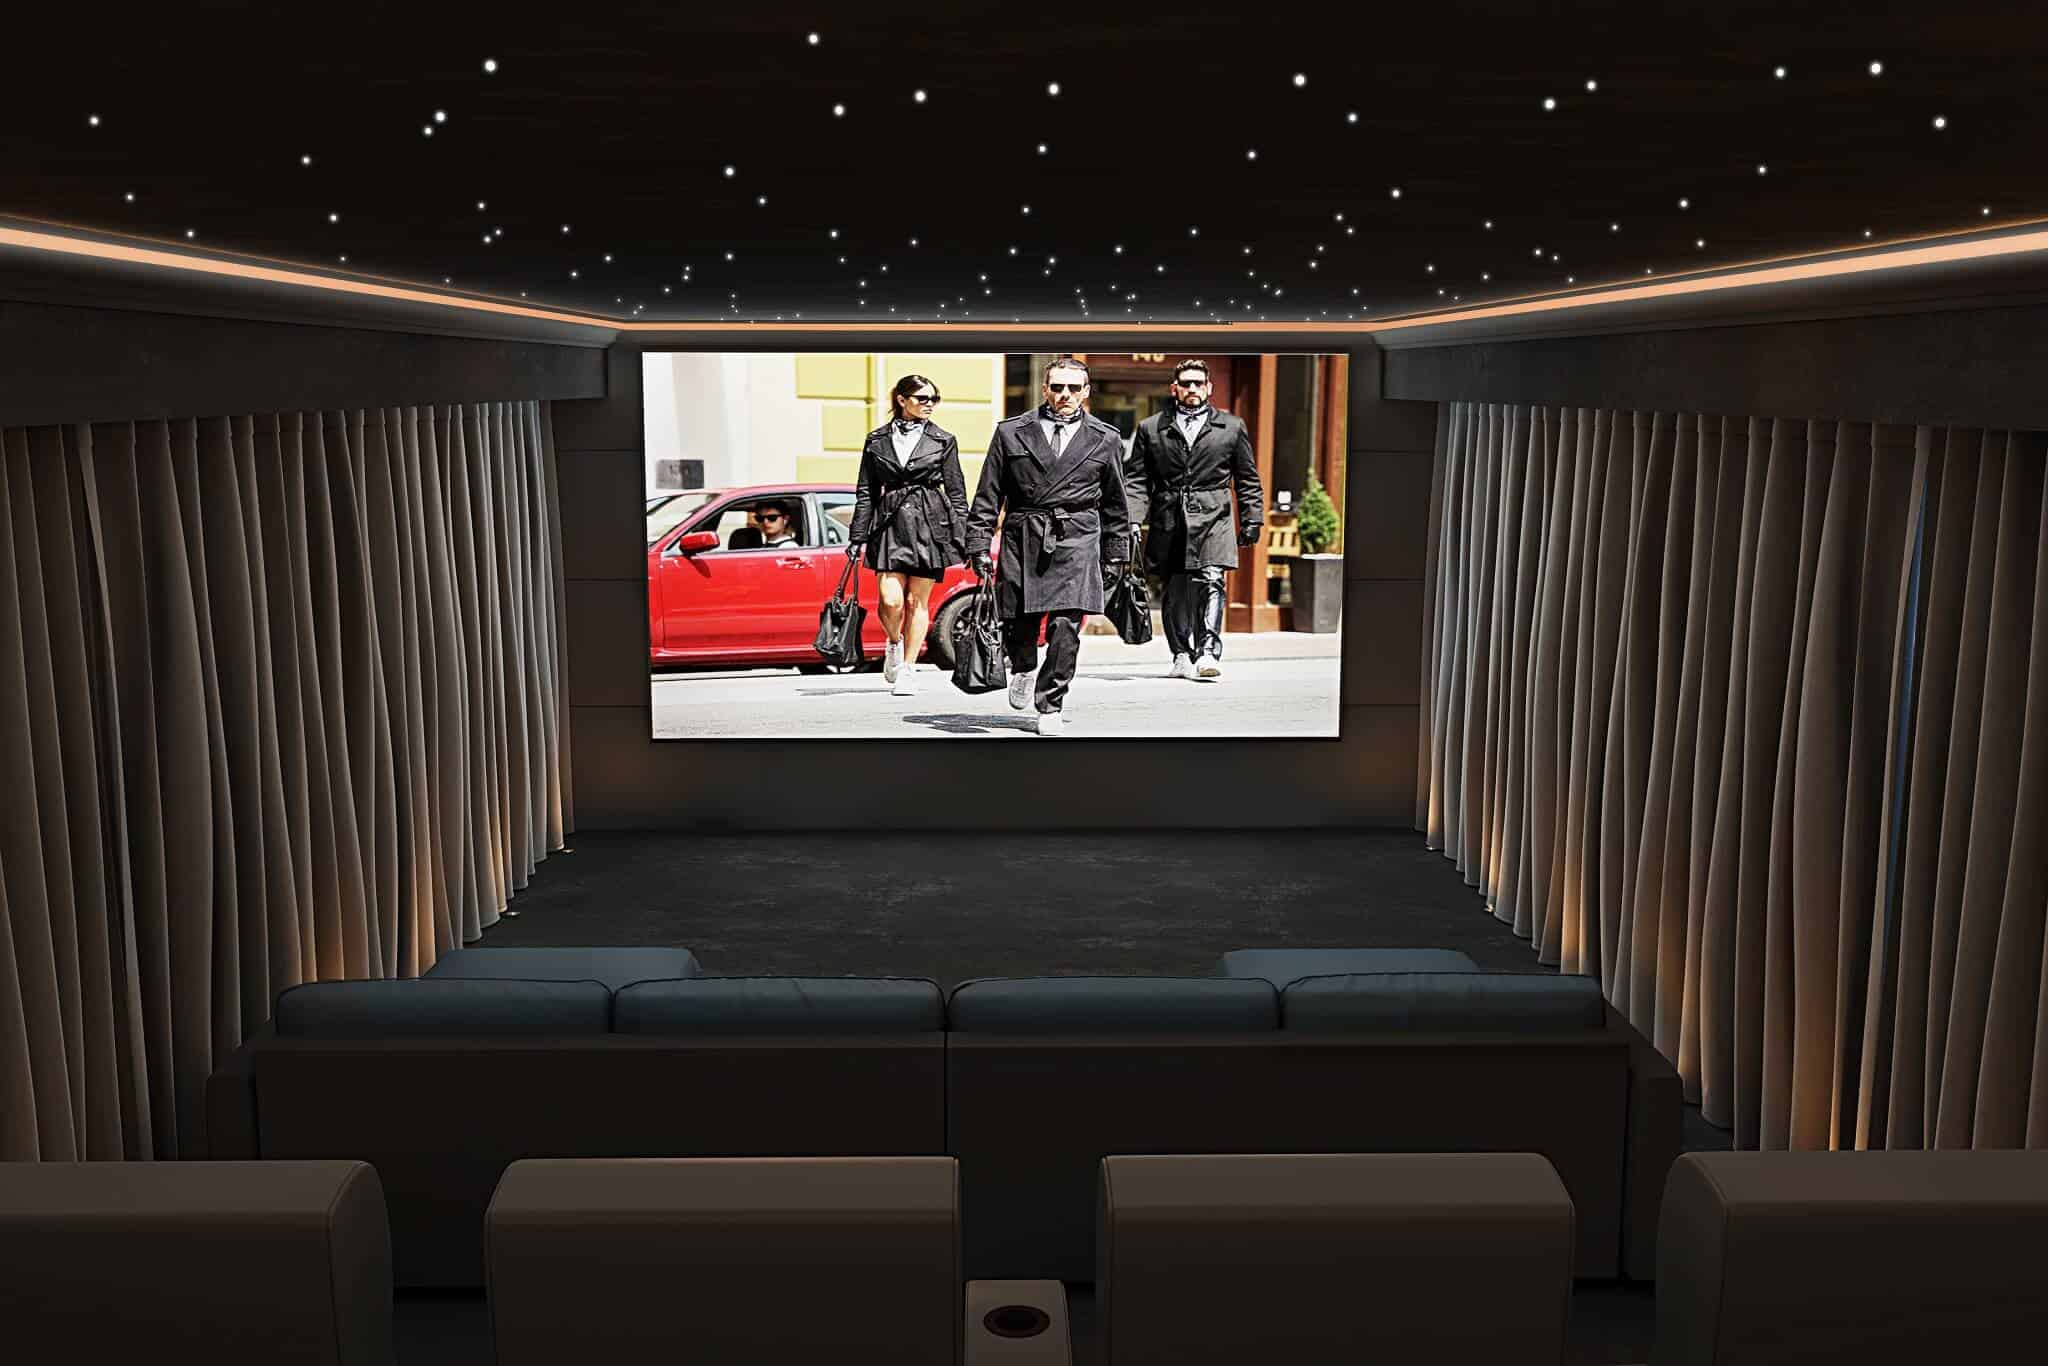 case study cheshire home cinema installation home. Black Bedroom Furniture Sets. Home Design Ideas